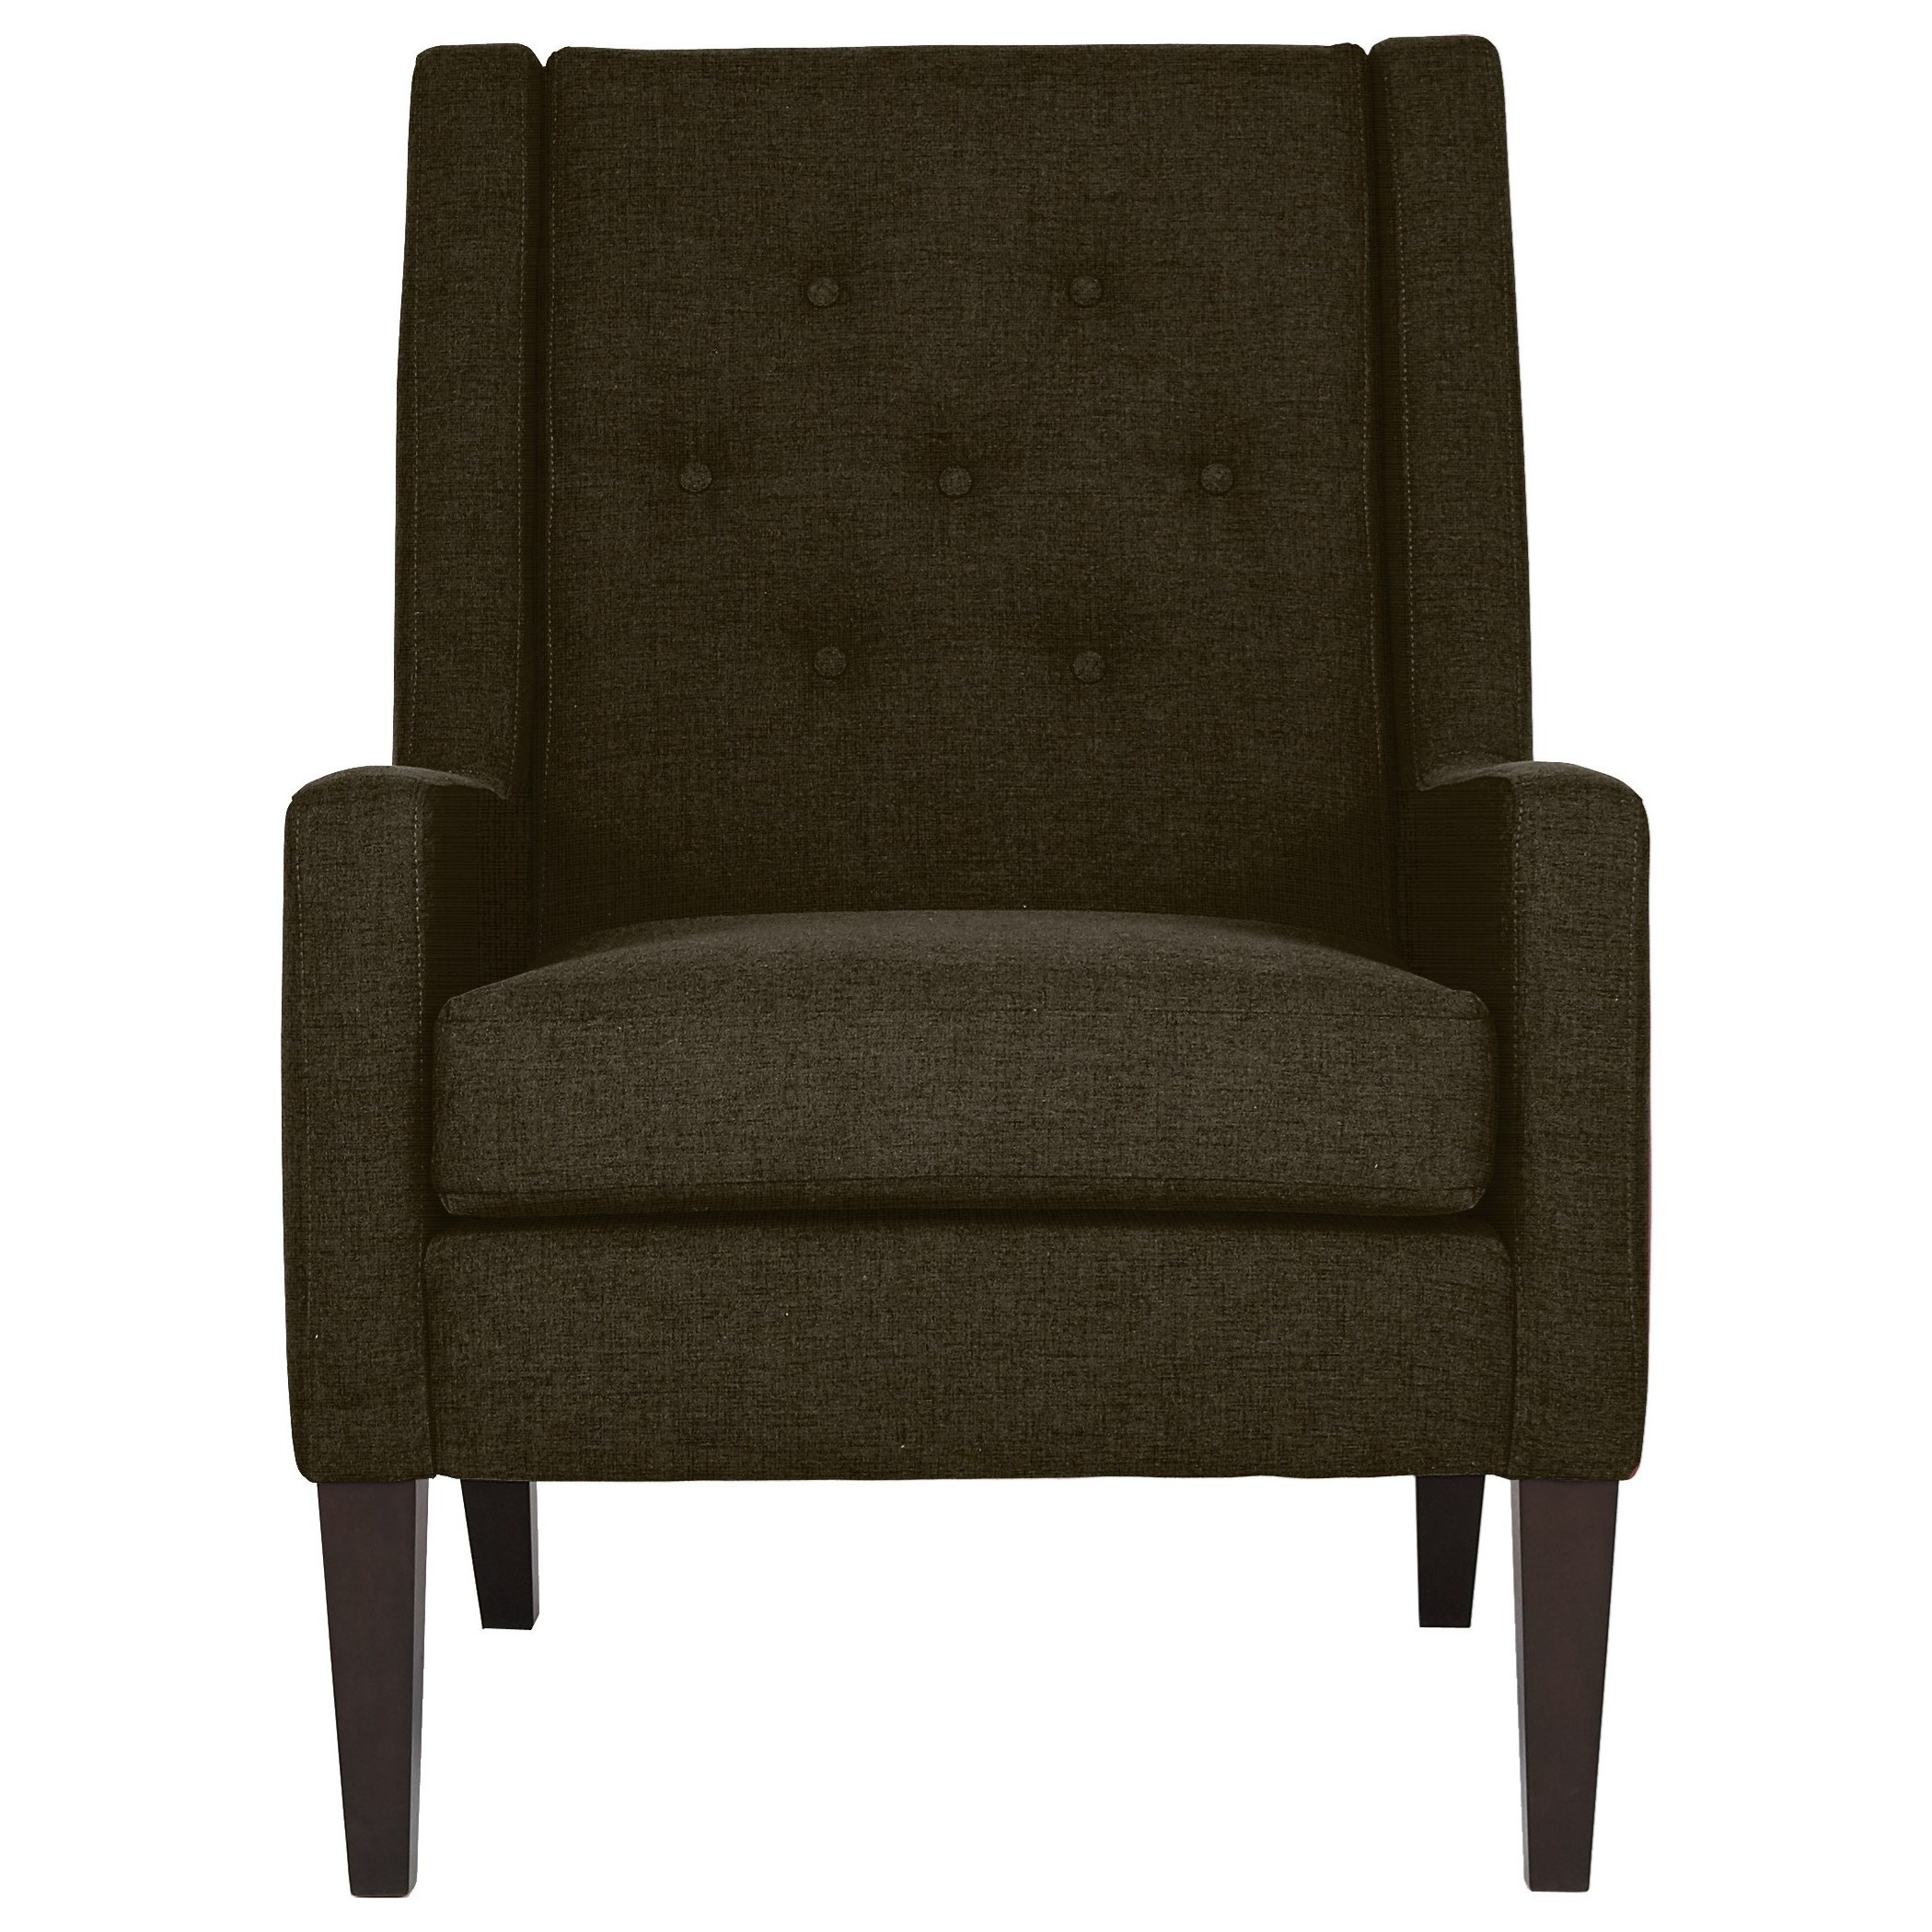 Accent Chairs Chair by Best Home Furnishings at Steger's Furniture